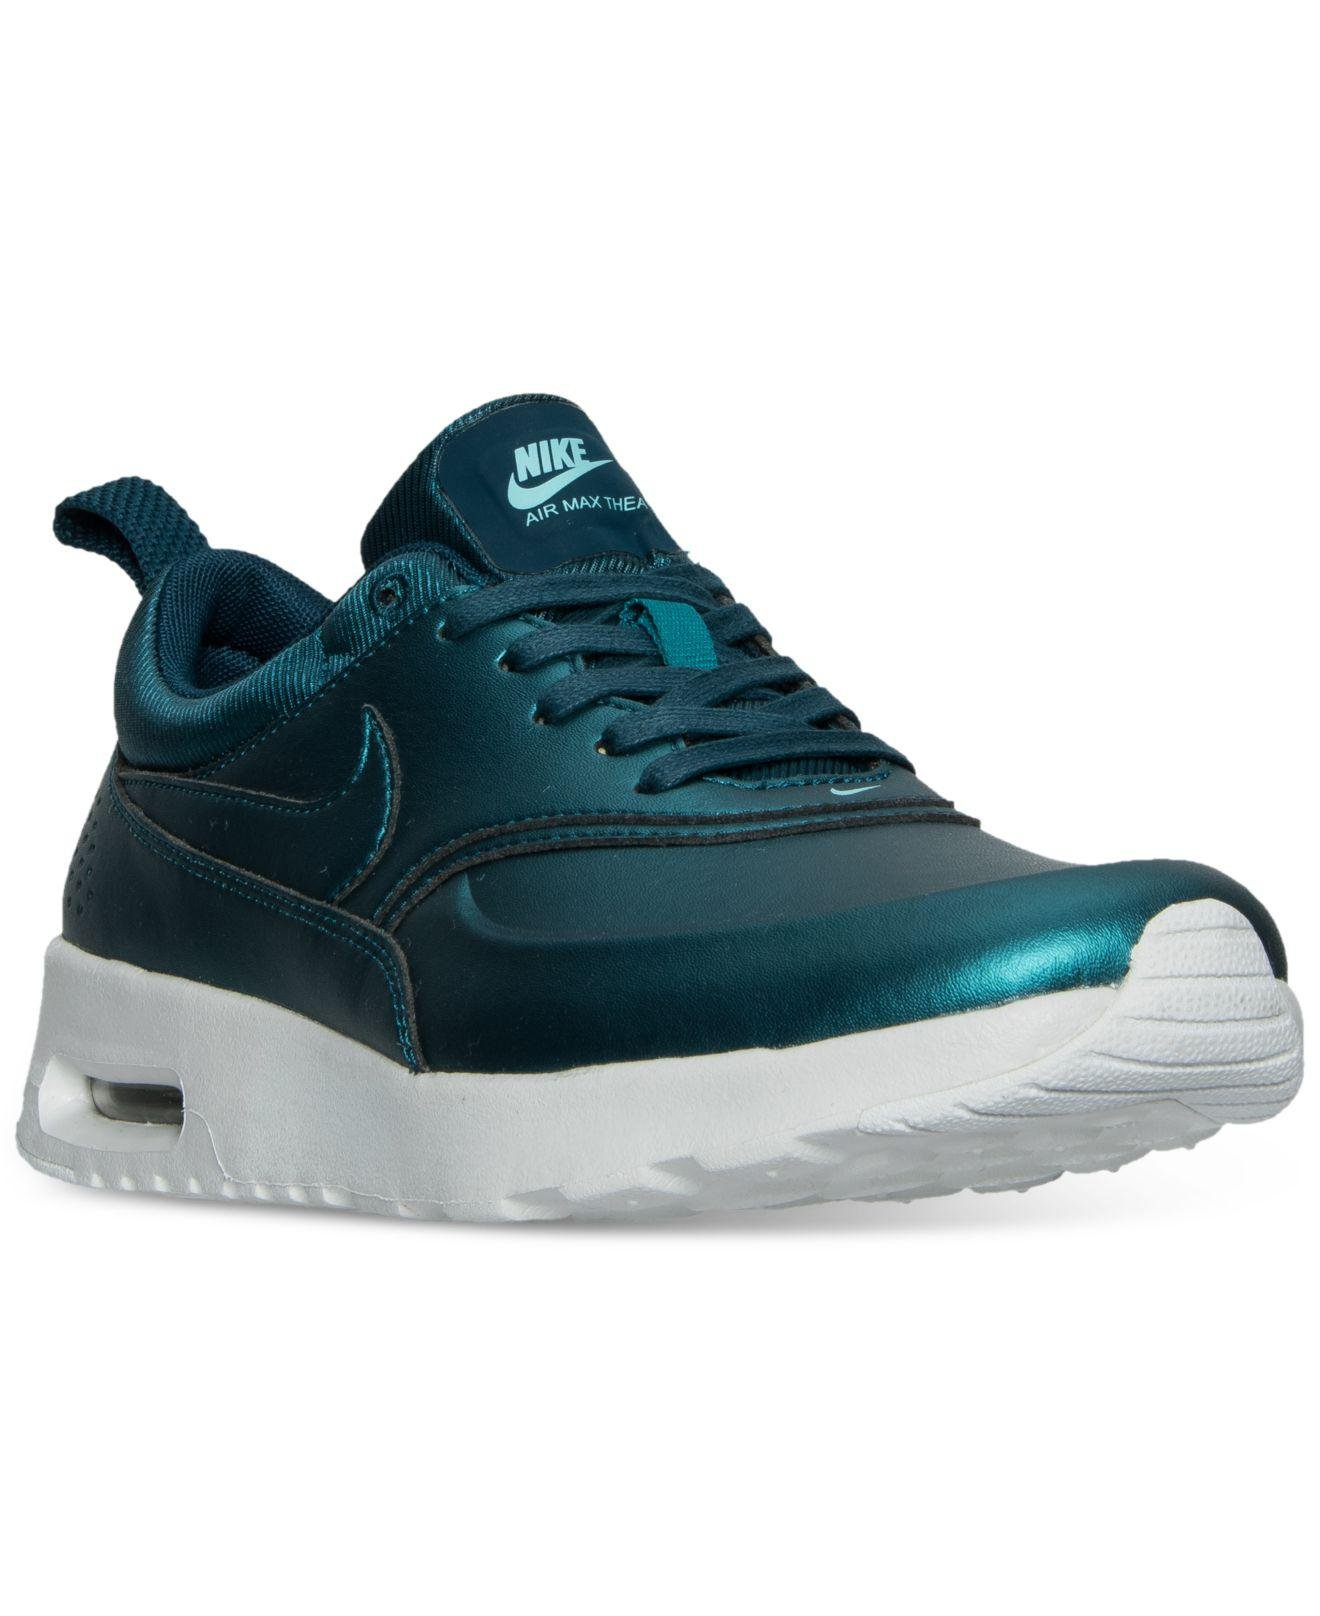 33c593399c Lyst - Nike Women's Air Max Thea Se Running Sneakers From Finish ...